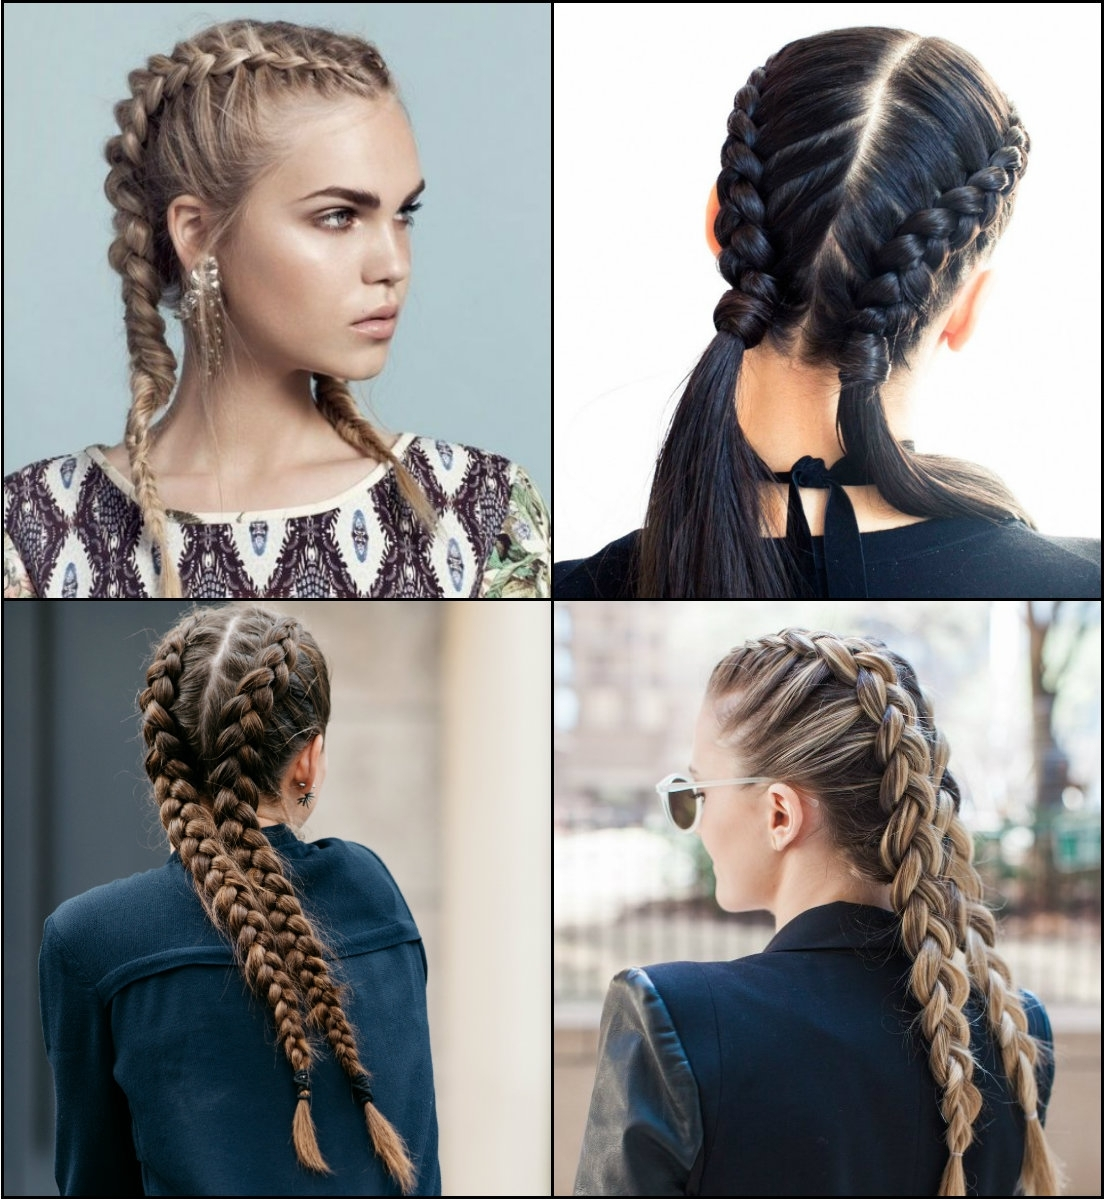 Volitional Double Braids Hairstyles To Dare Look Different Within Most Recently Released Blonde Ponytails With Double Braid (View 15 of 20)